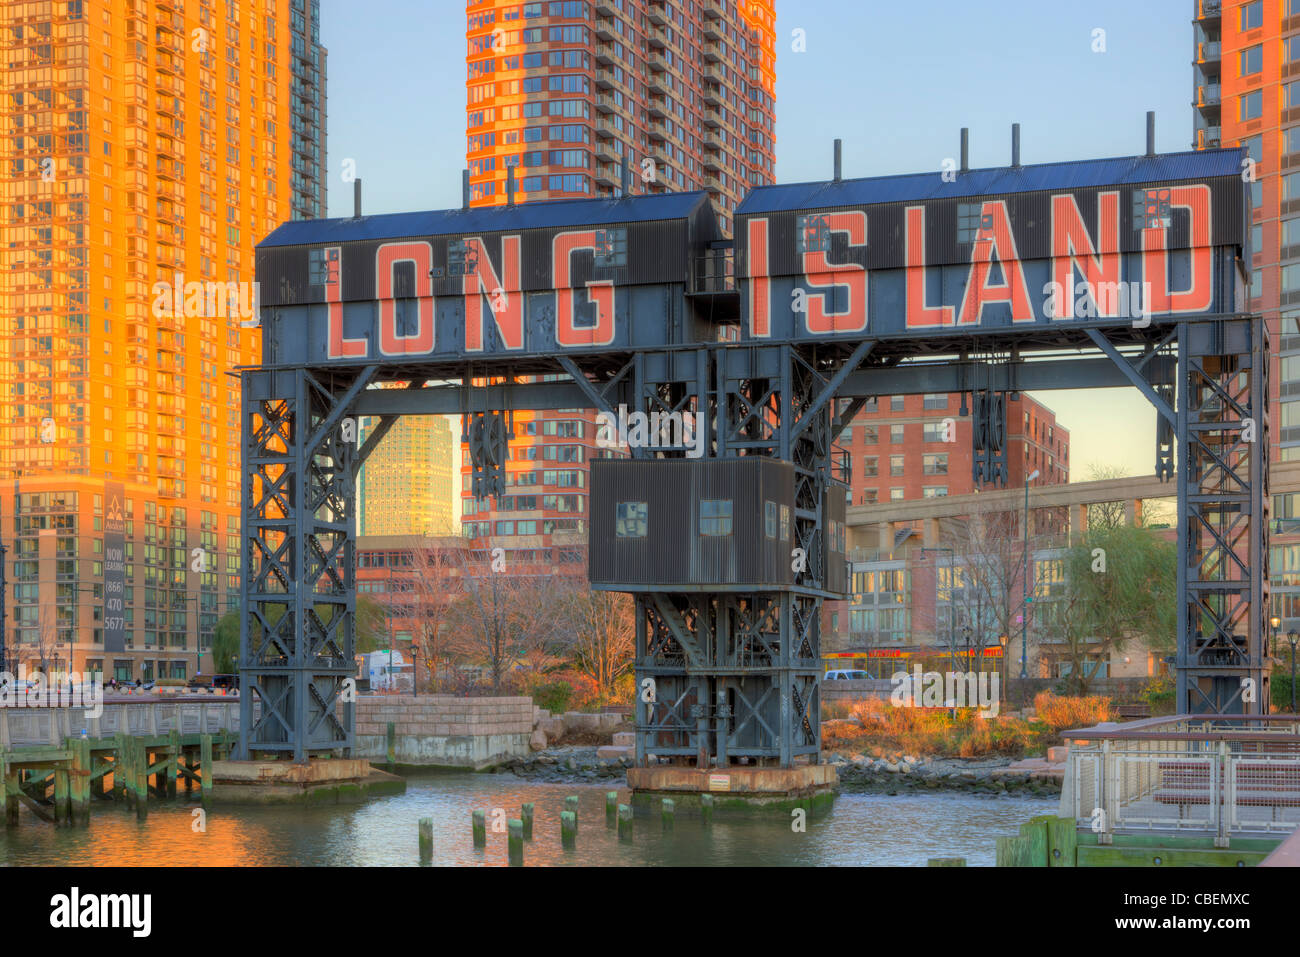 'Long Island' Gantry cranes in Gantry Plaza State Park in Long Island City, Queens, New York City. - Stock Image